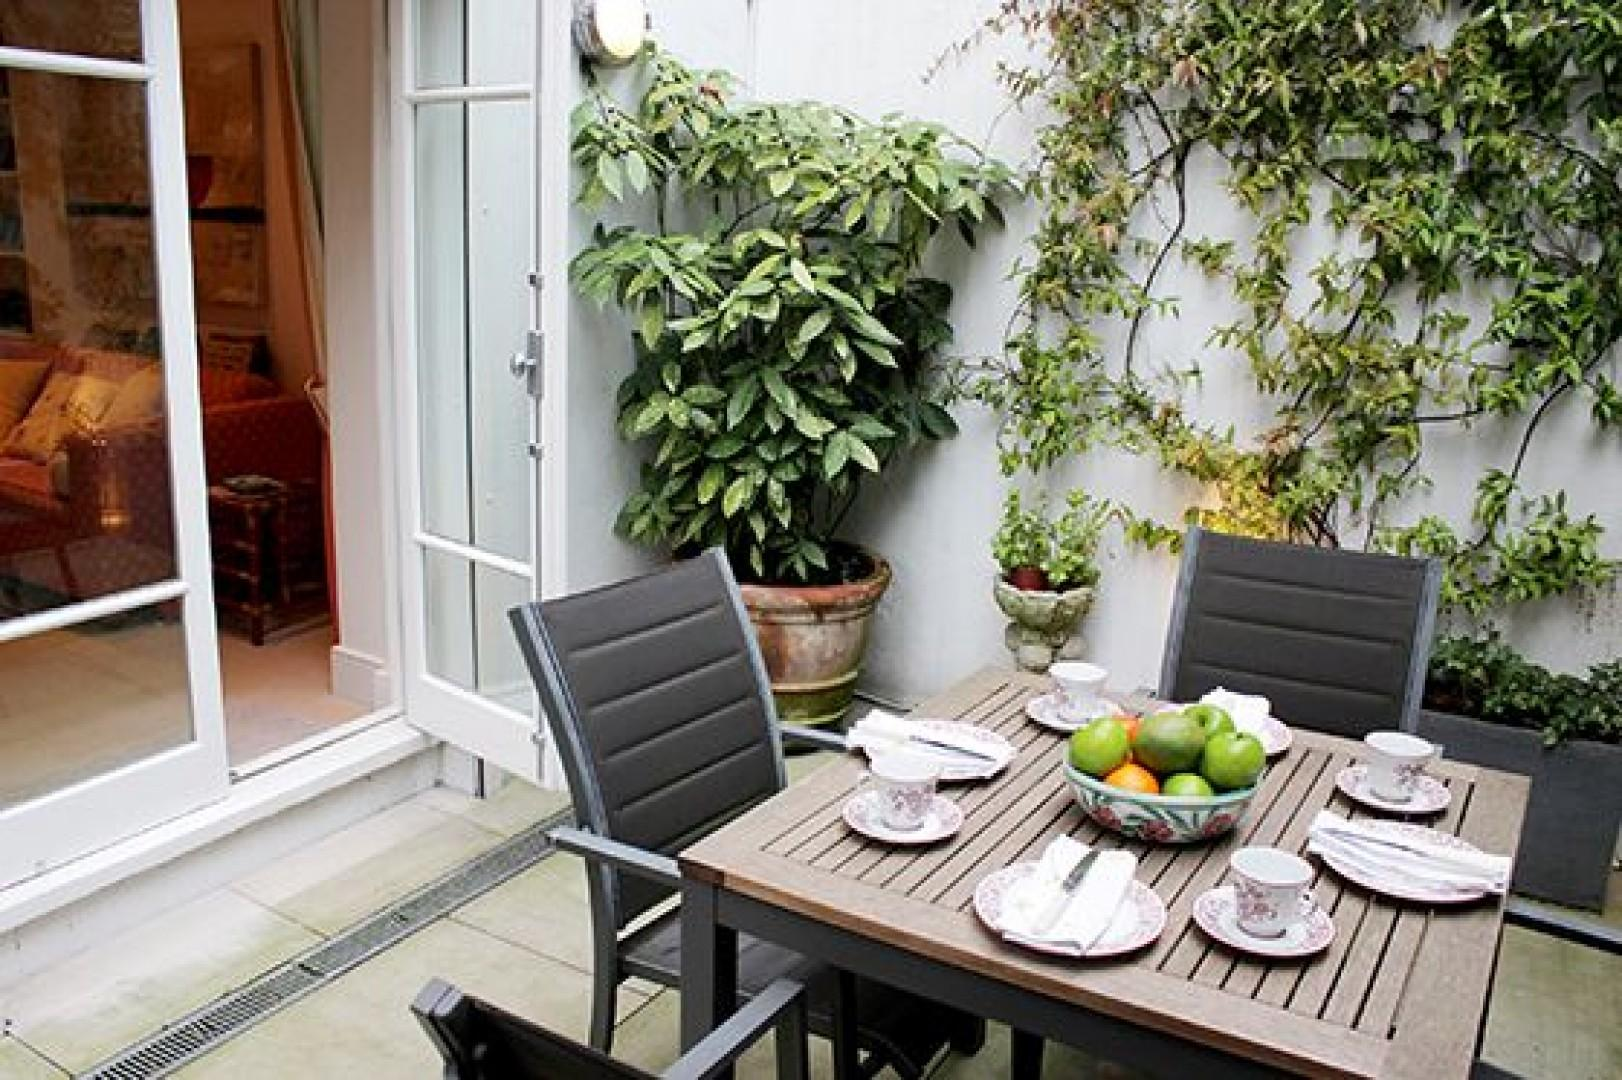 Step out onto the private patio garden just off the den